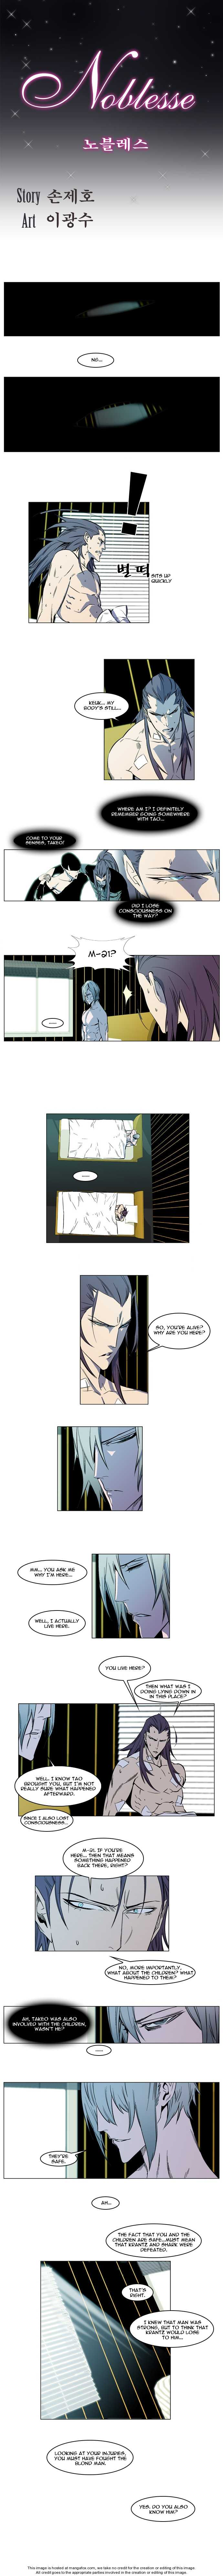 Noblesse 139 Page 1